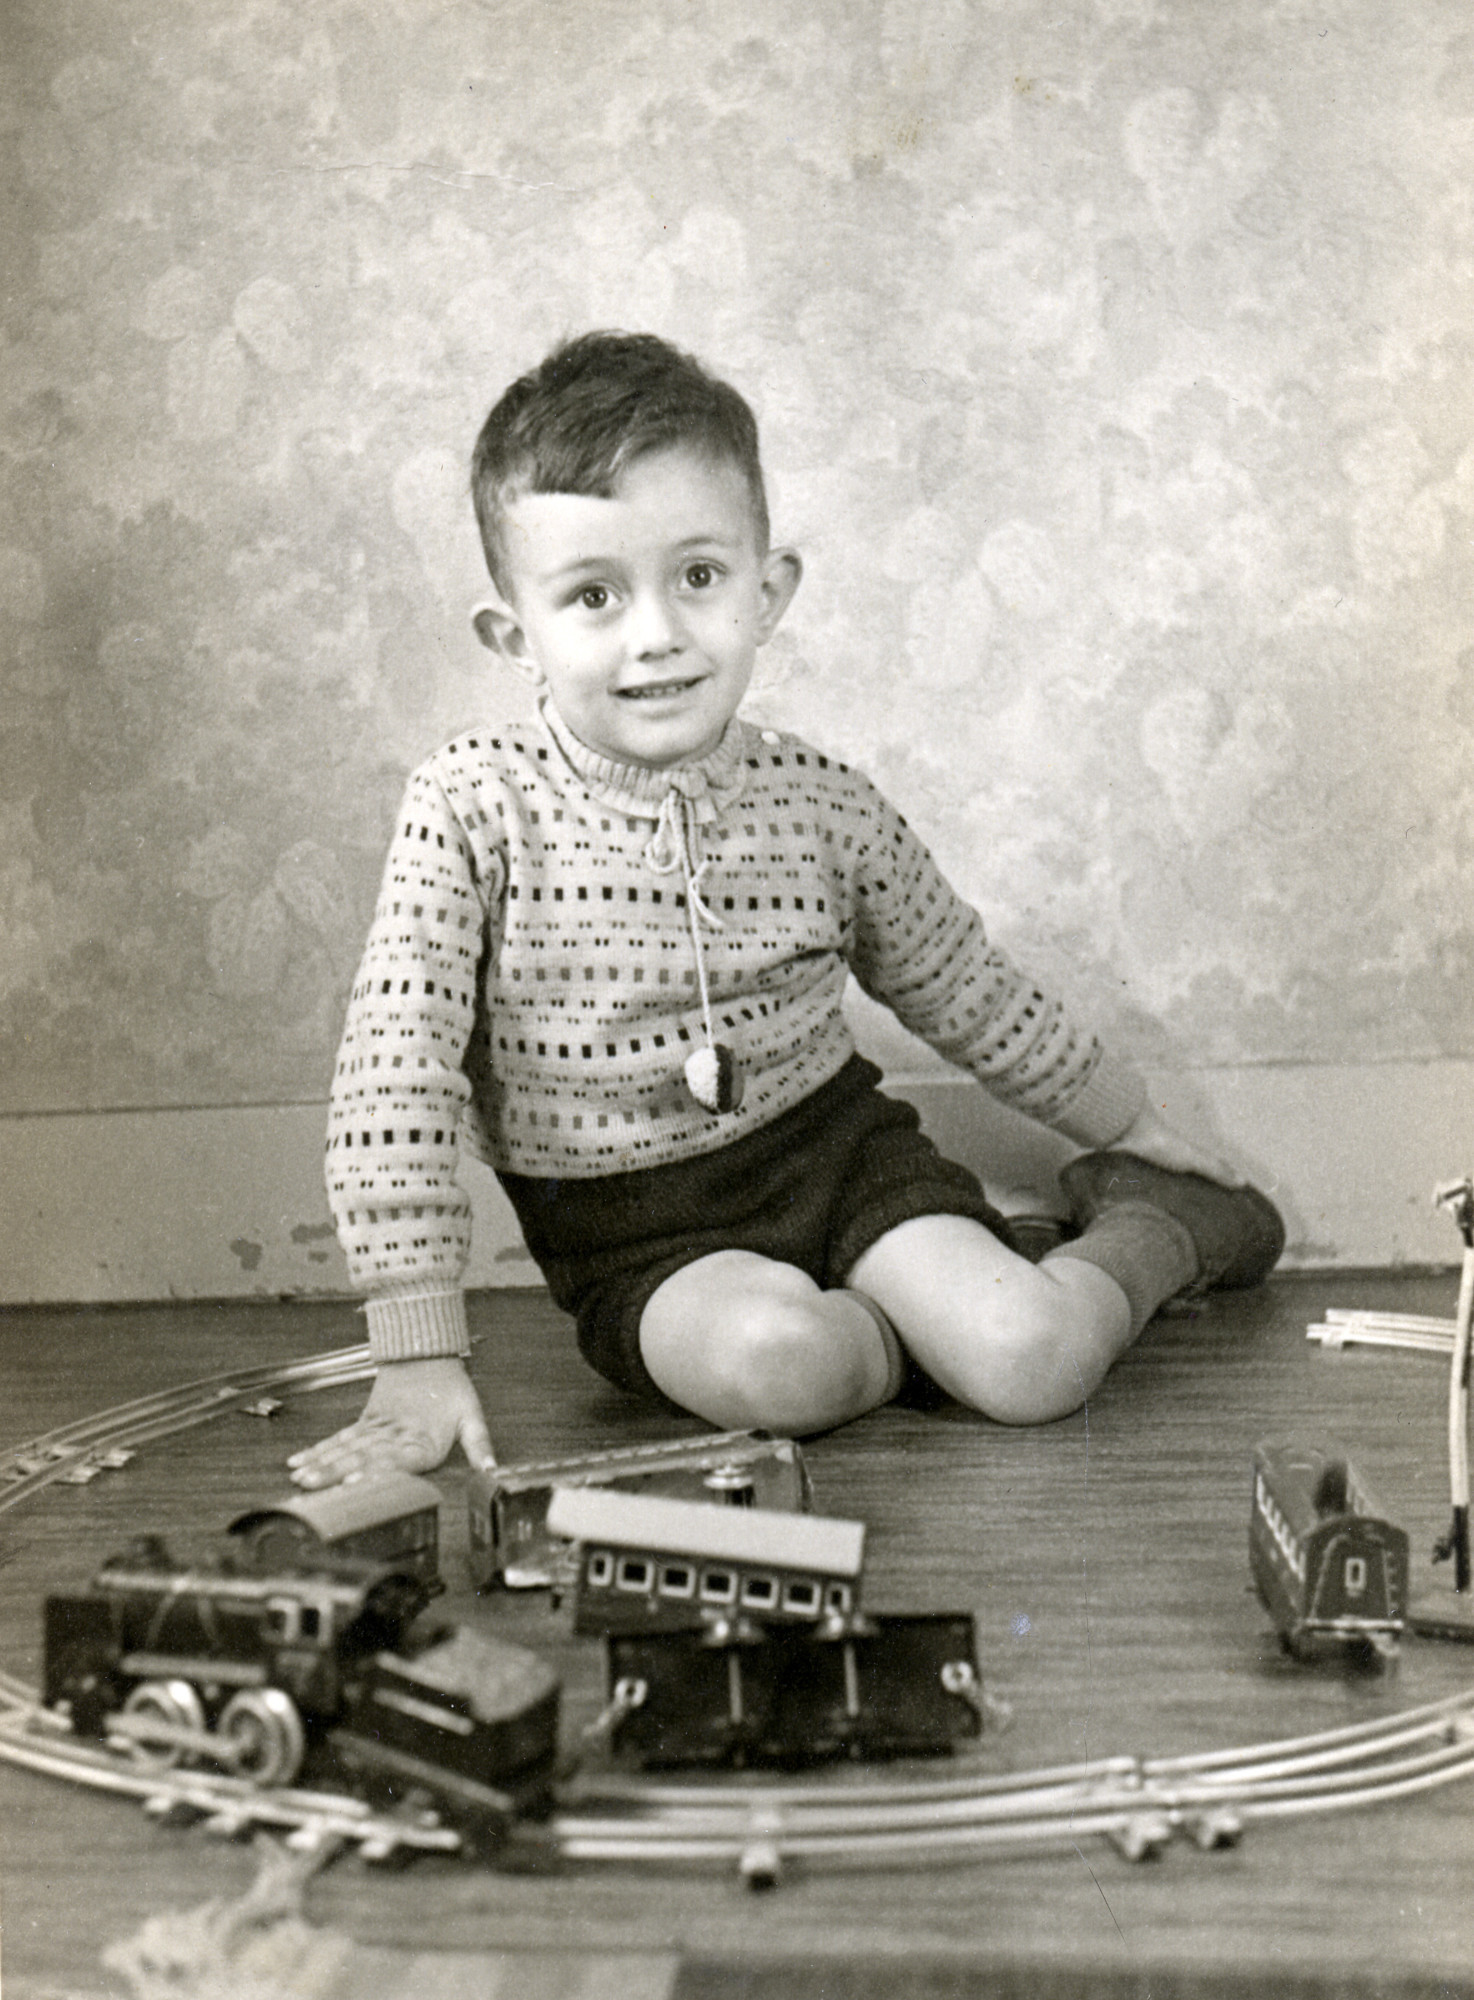 Portrait of Louis Polak with a toy train set, taken prior to going into hiding.